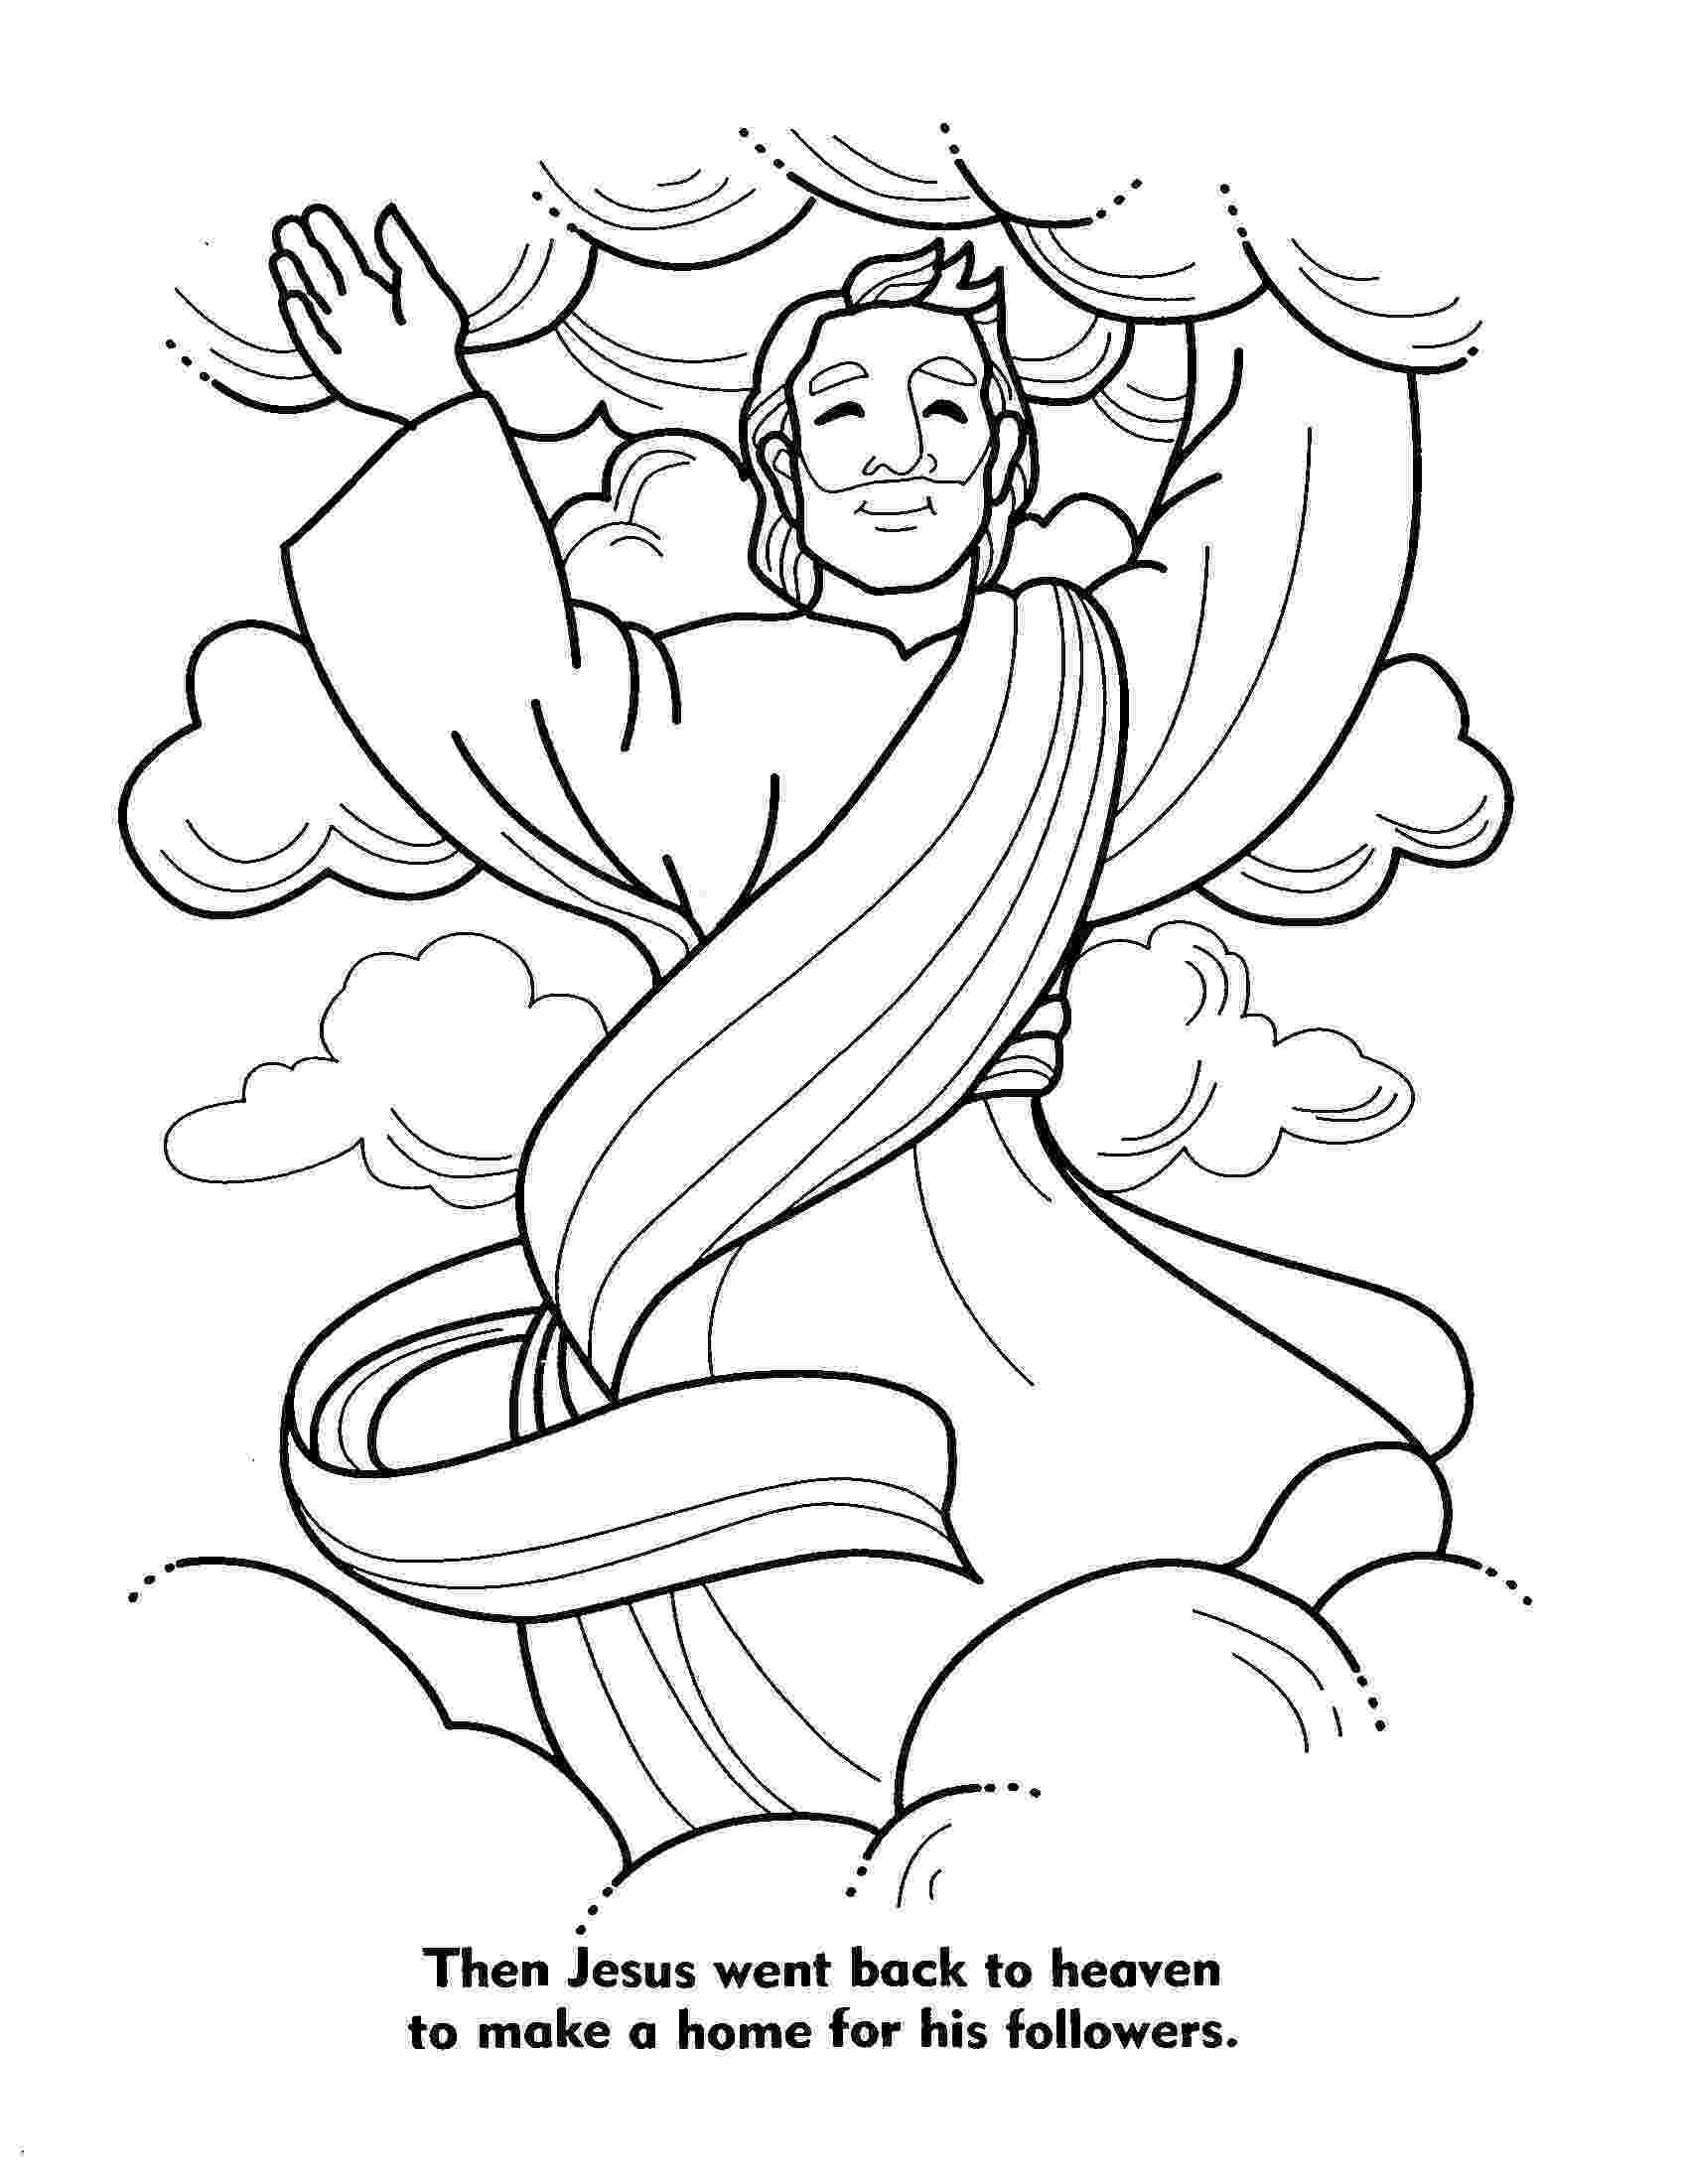 picture of jesus ascending to heaven jesus coloring pictures children bible coloring pages of jesus heaven picture to ascending